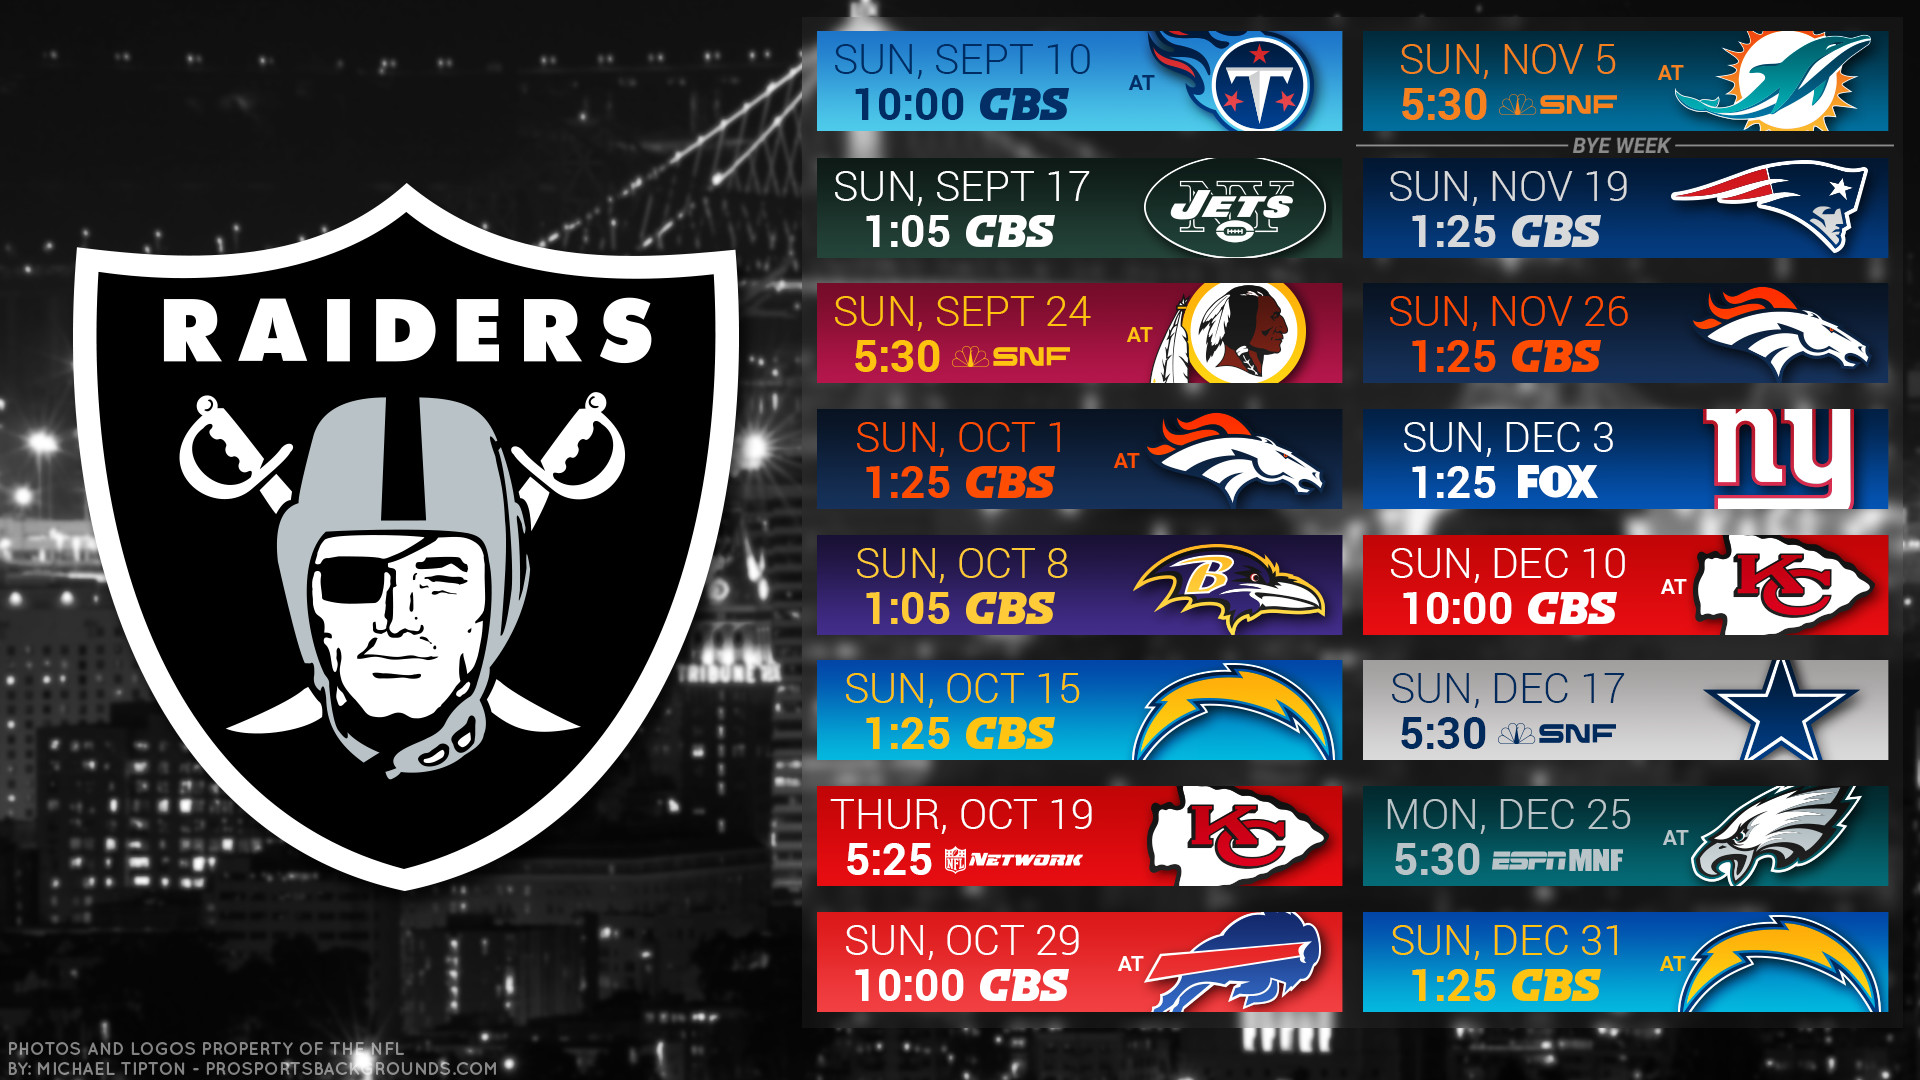 1920x1080 Oakland Raiders 2017 schedule city football logo wallpaper free pc desktop  computer ...